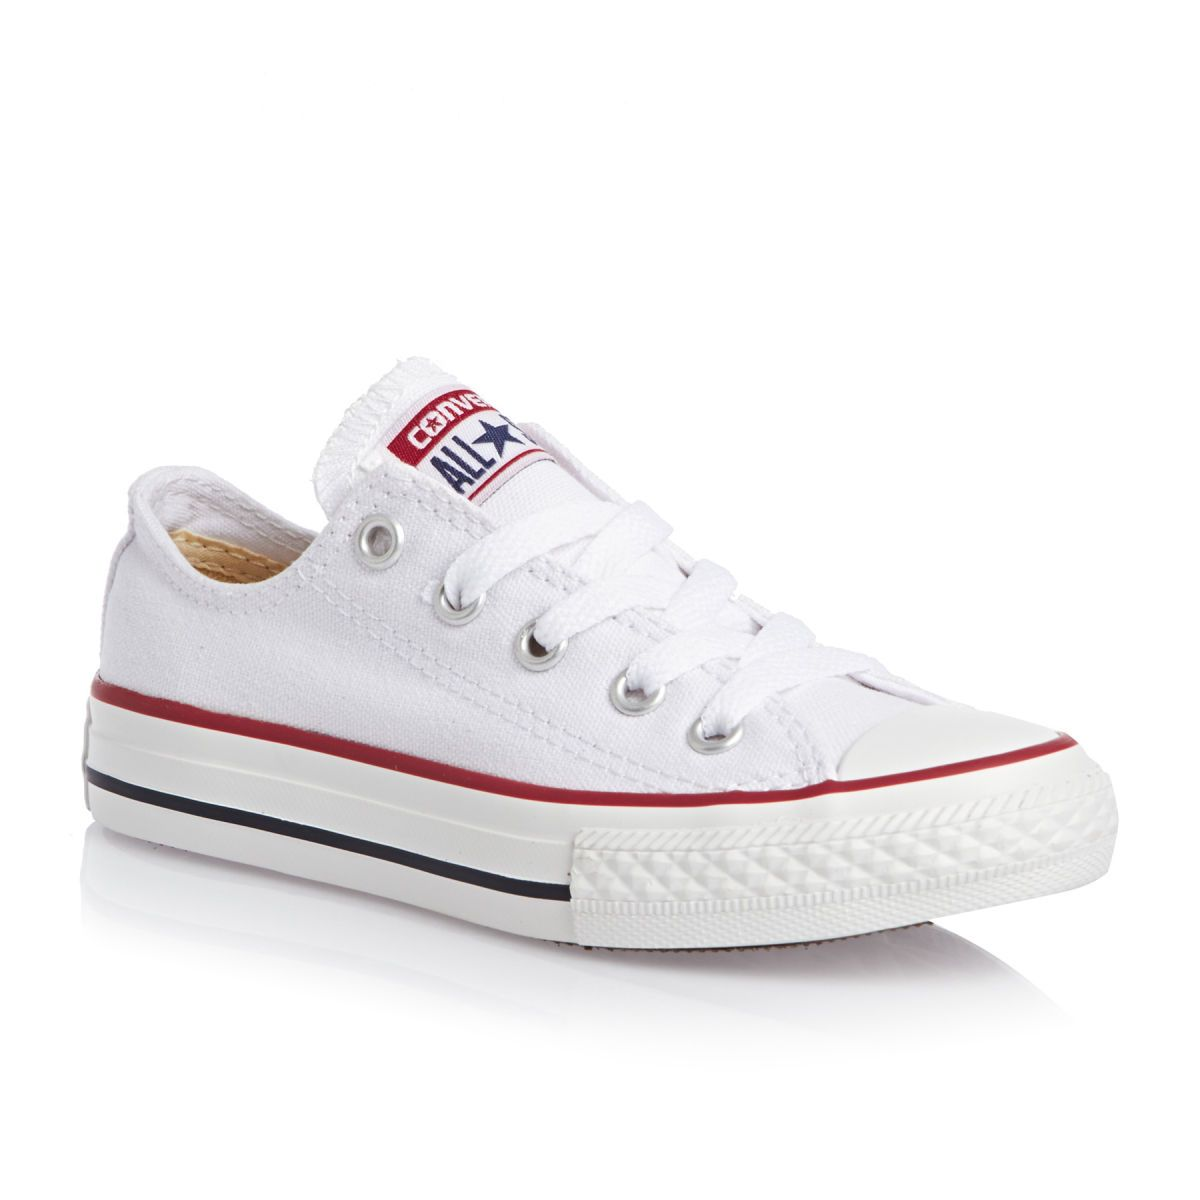 Converse Chuck Taylor All Star Youth Classic Ox Canvas Shoes - Optical White